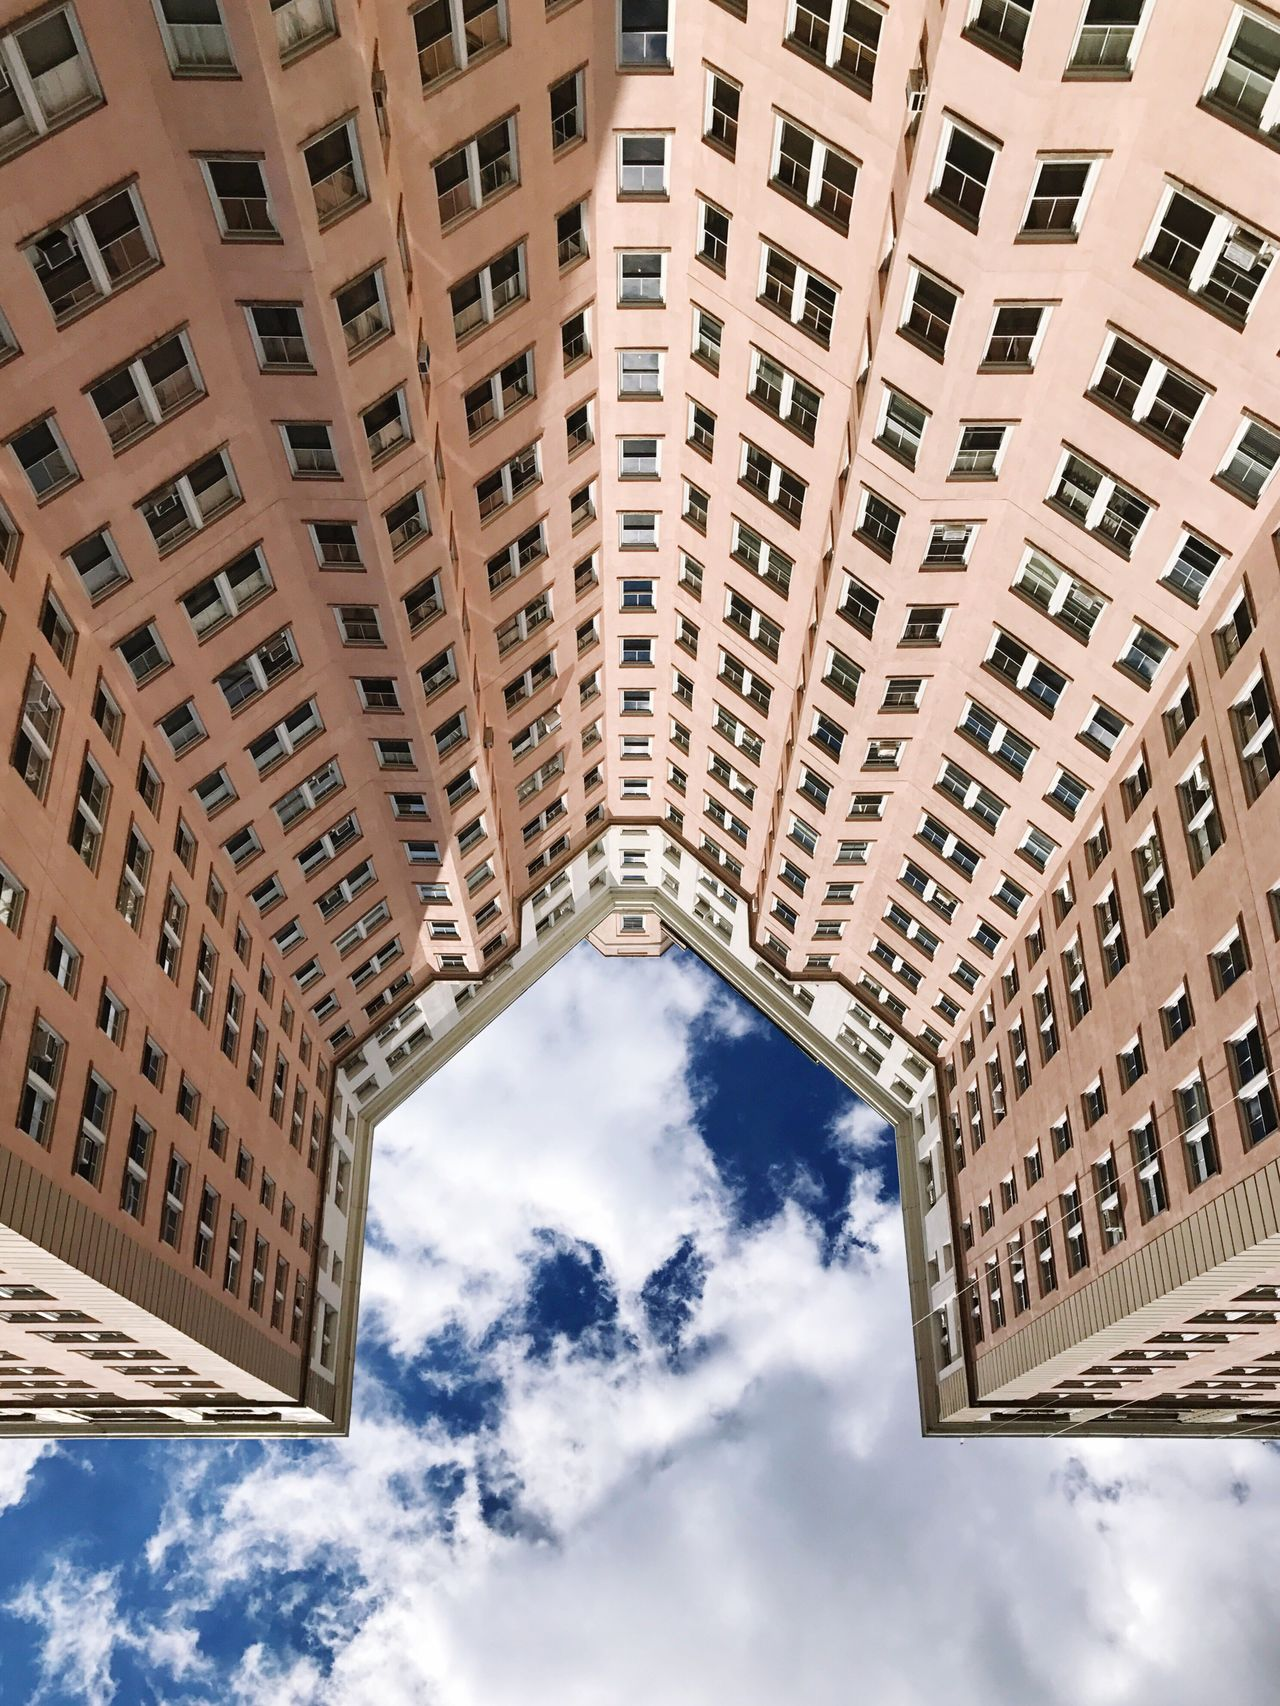 Architecture Built Structure Low Angle View Building Exterior Sky Cloud - Sky Skyscraper Travel Destinations City Day Tall Outdoors Modern No People